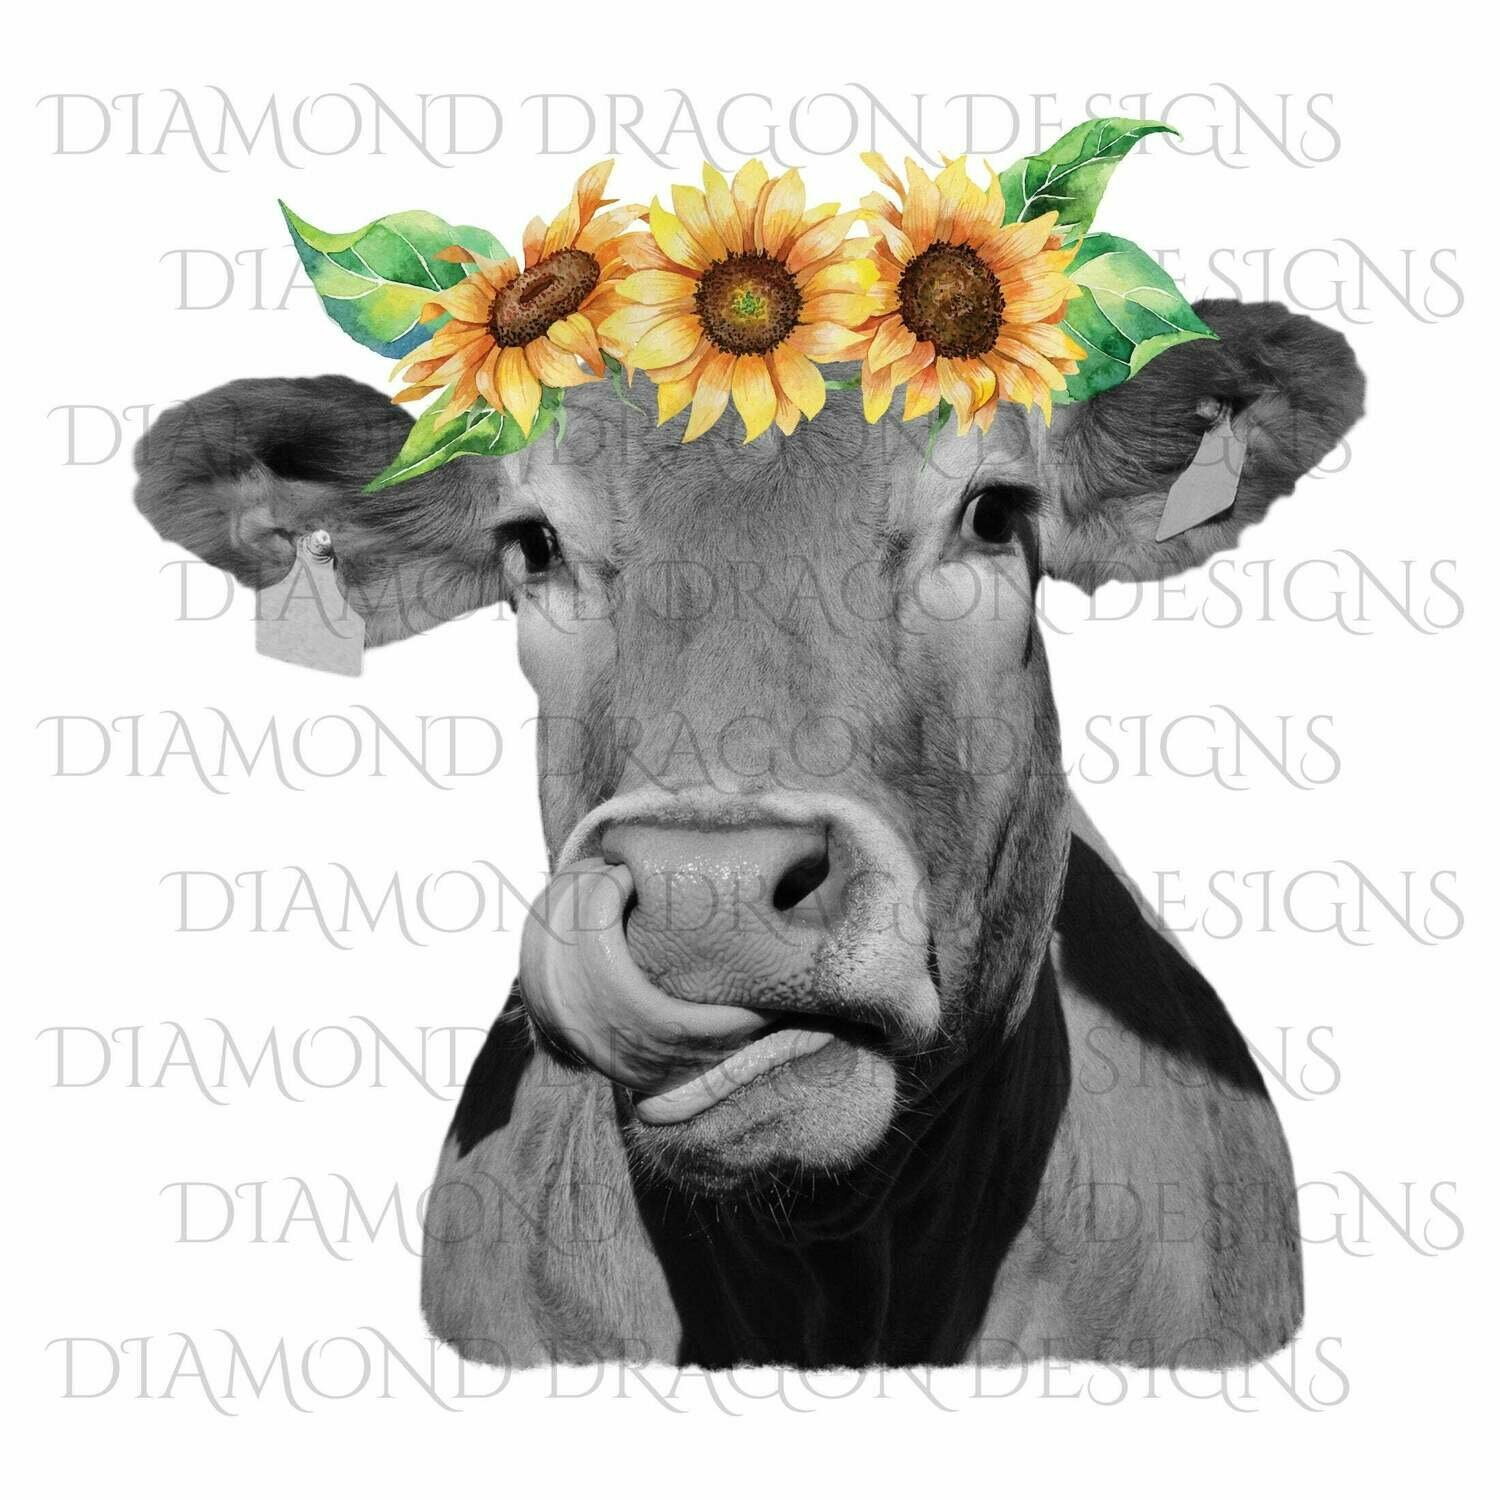 Cows - Heifer, Image, Cute Cow, Sunflower Crown, Cowlick, Cow Tongue Out, Waterslide